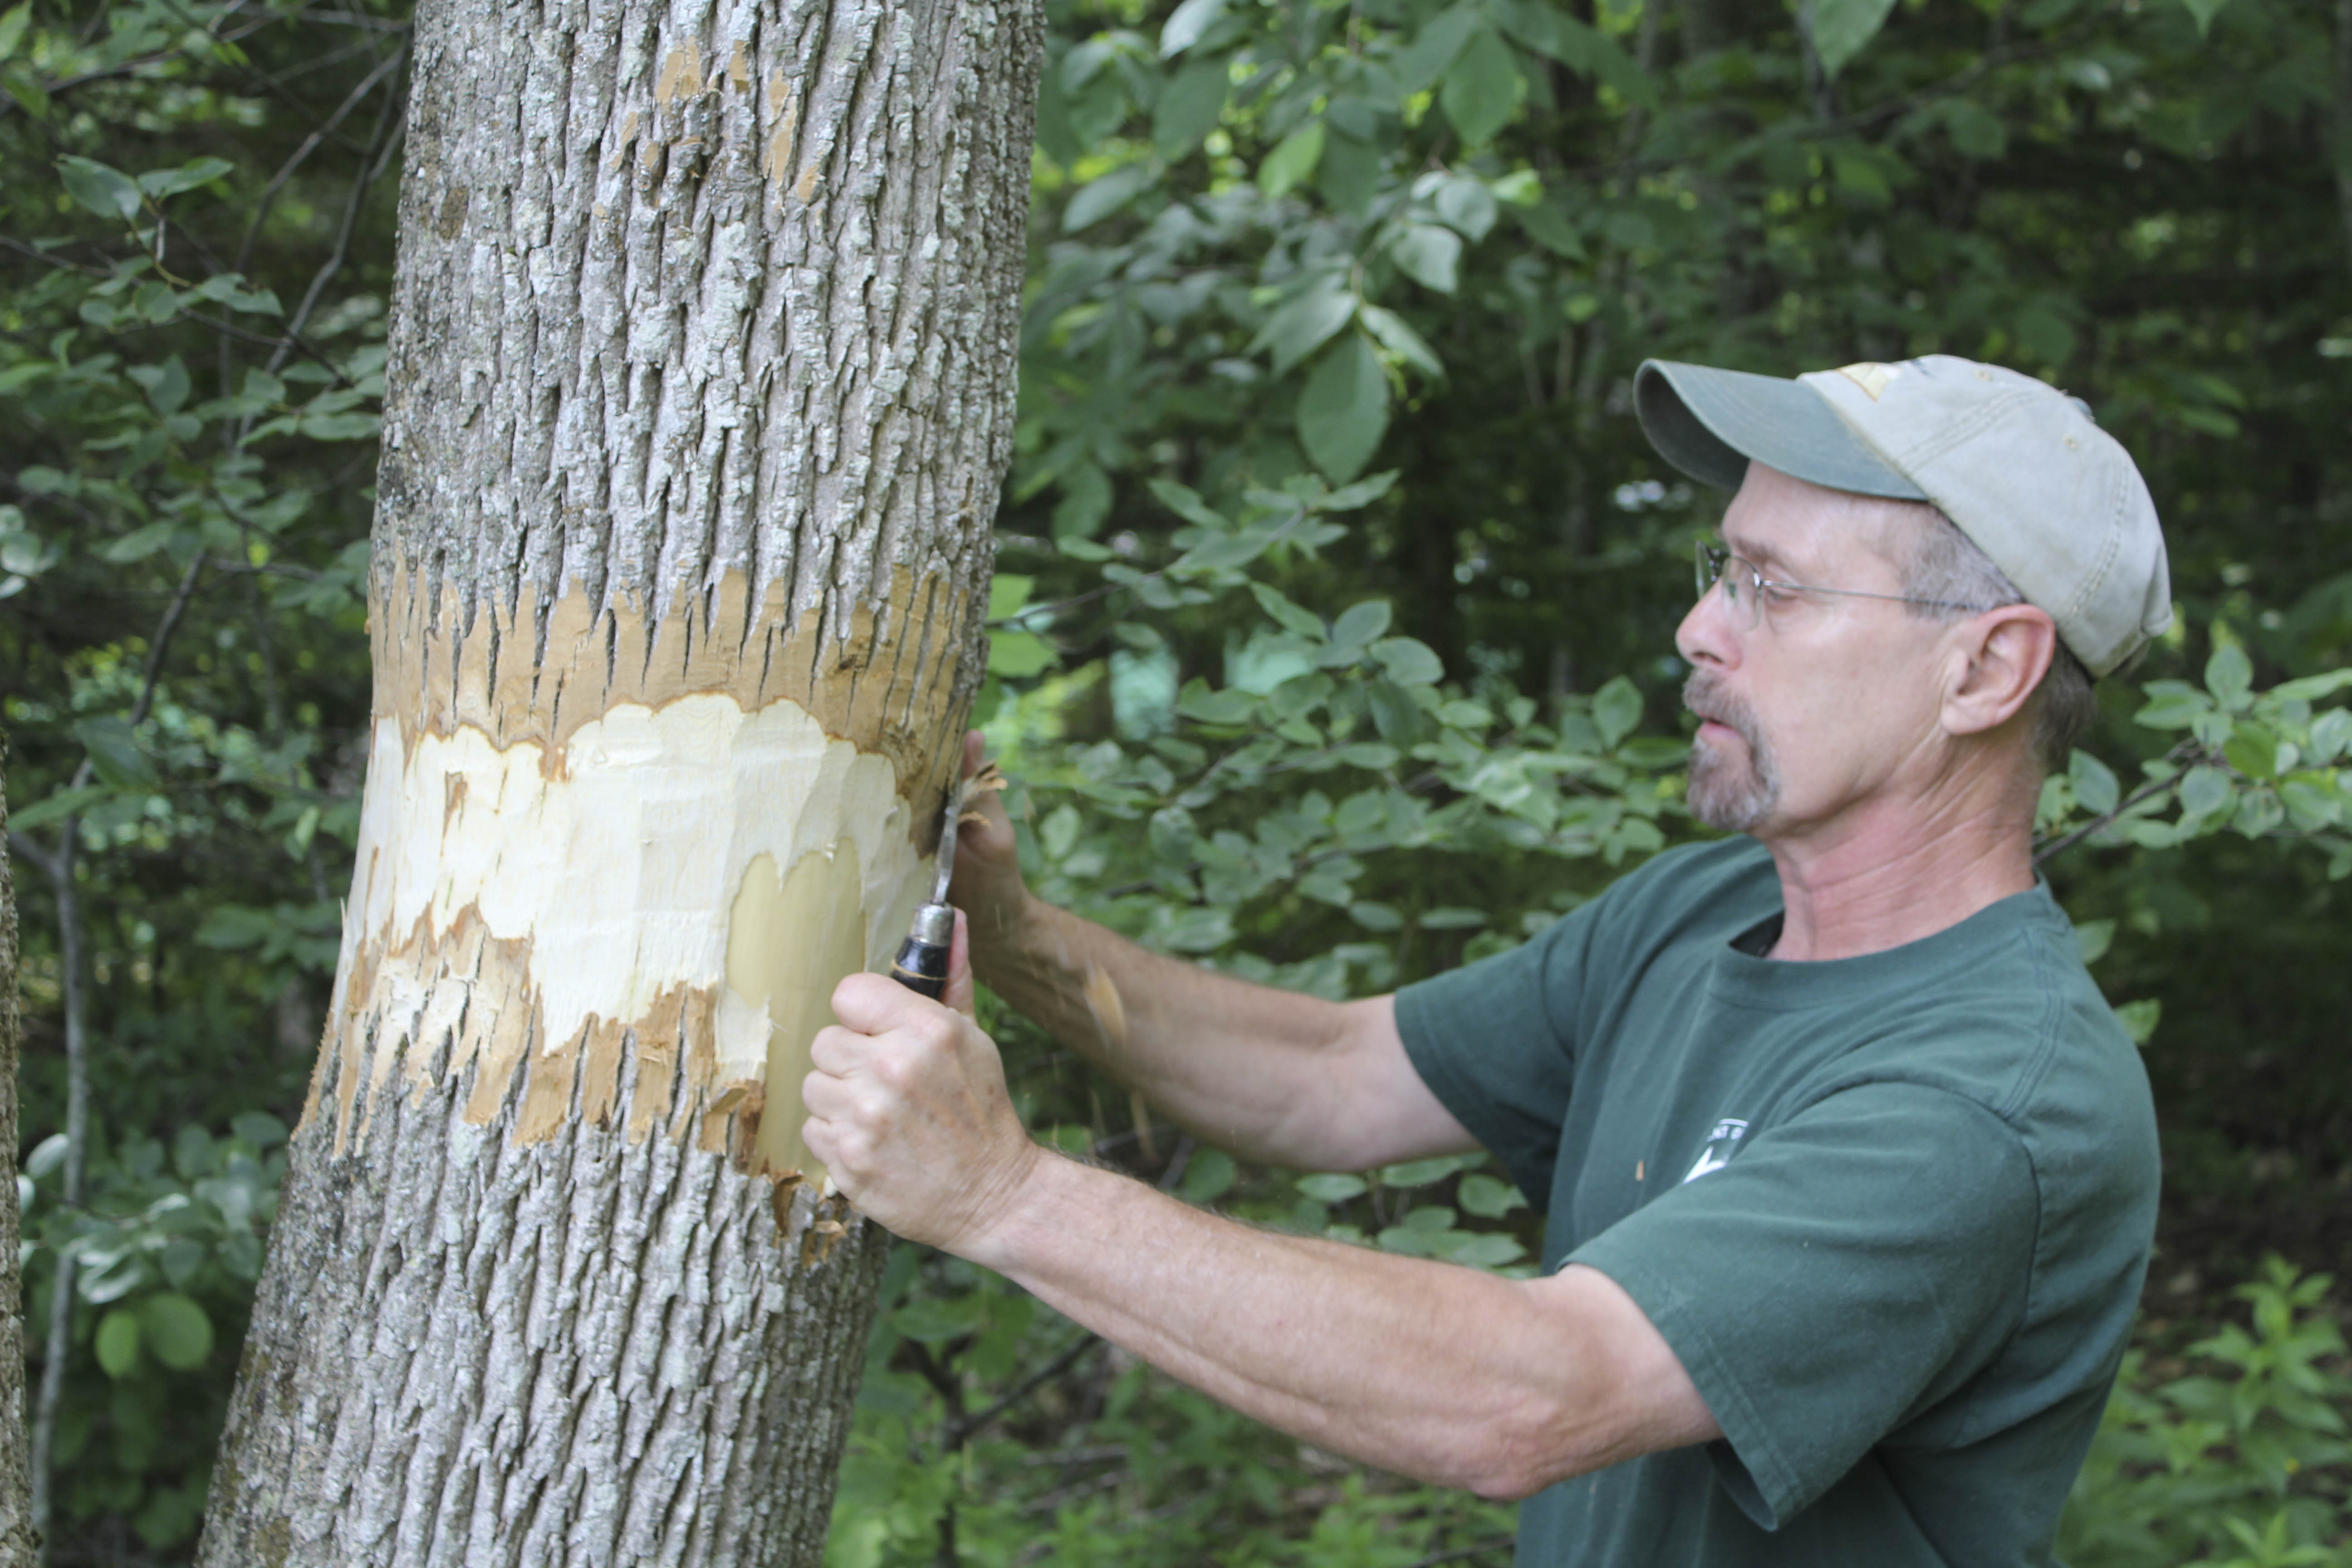 Peter Carpenter, a Camden Hills State Park ranger, scrapes bark off an ash tree. This will distress the tree and cause it to secrete chemicals that are attractive to emerald ash borers. This way state biologists will know if there are any of the invasive species in the area.